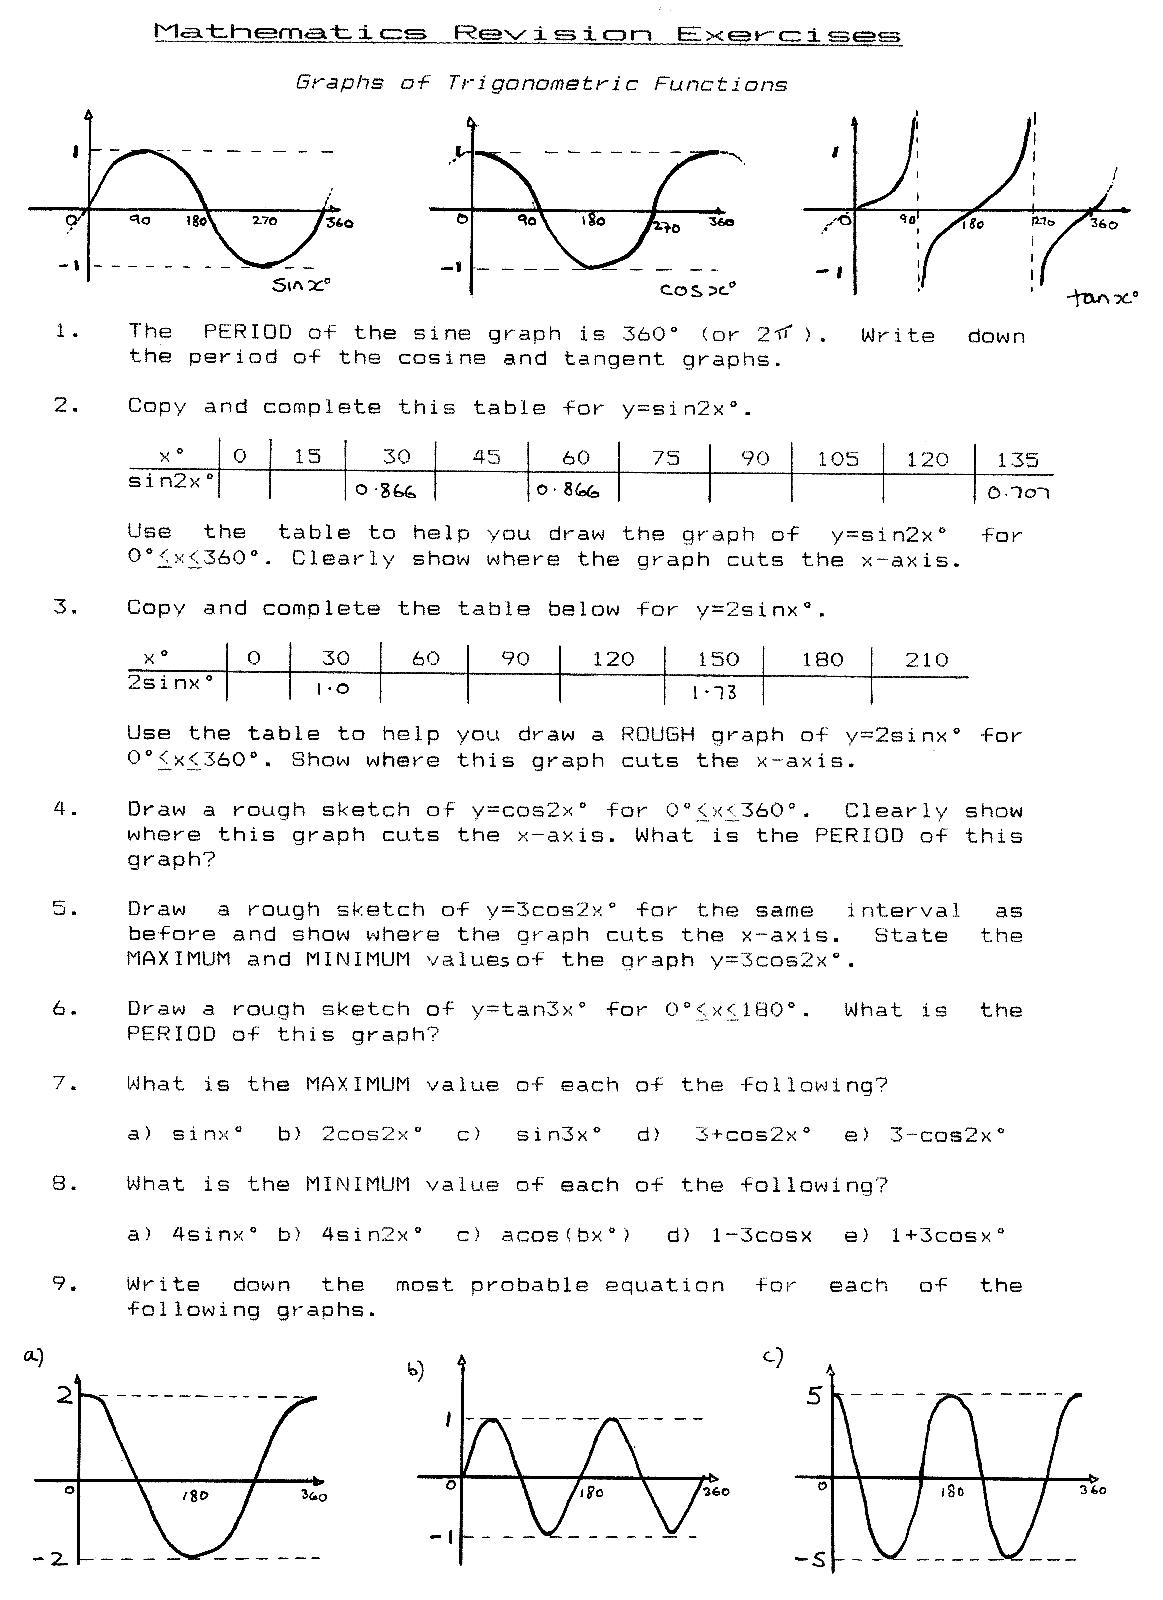 Trigonometric Equations Worksheet